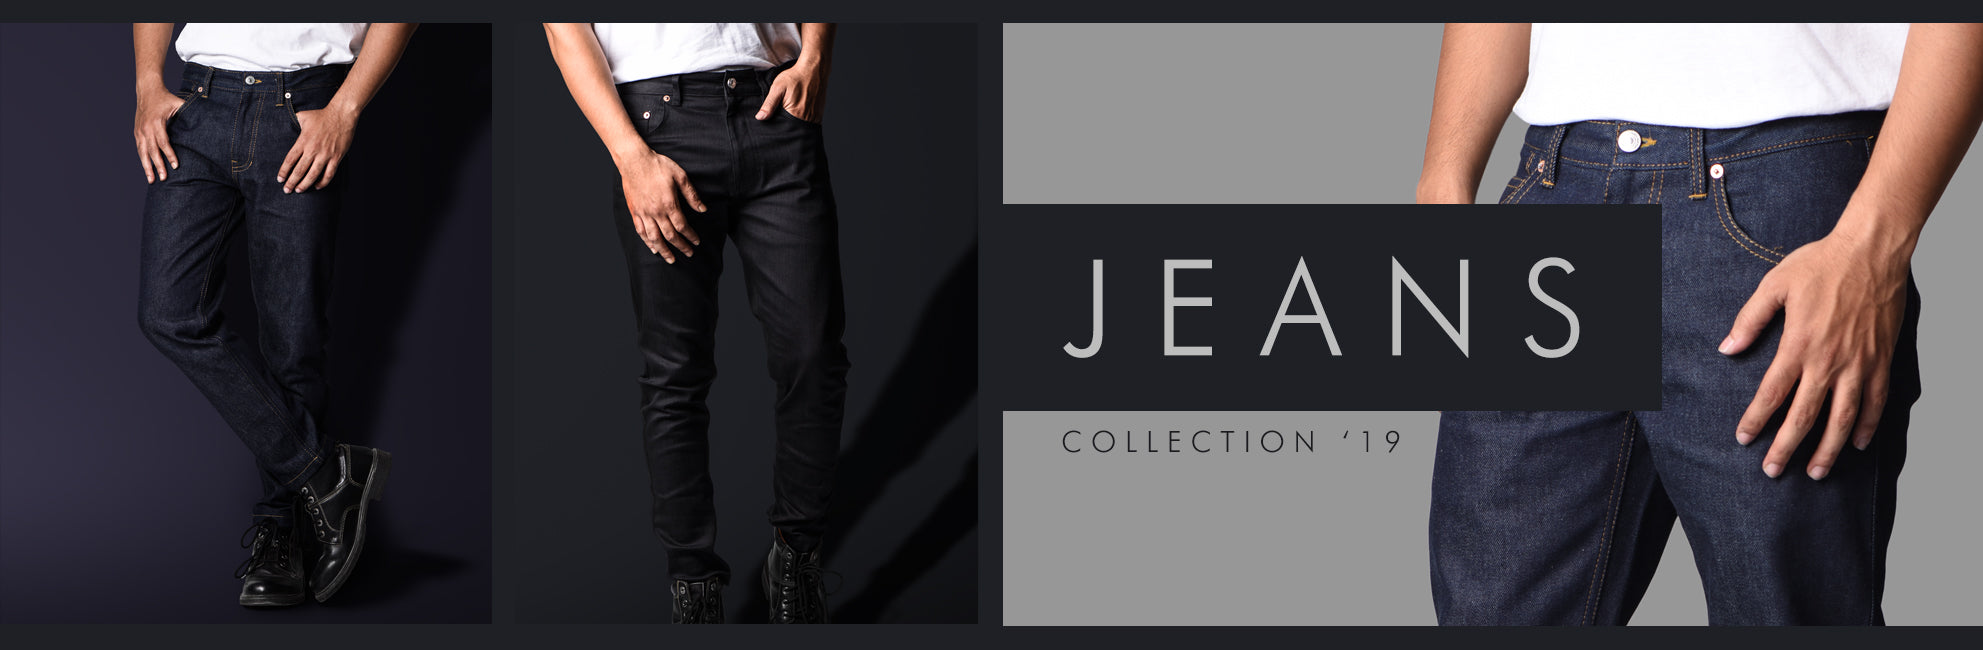 Jeans Banner